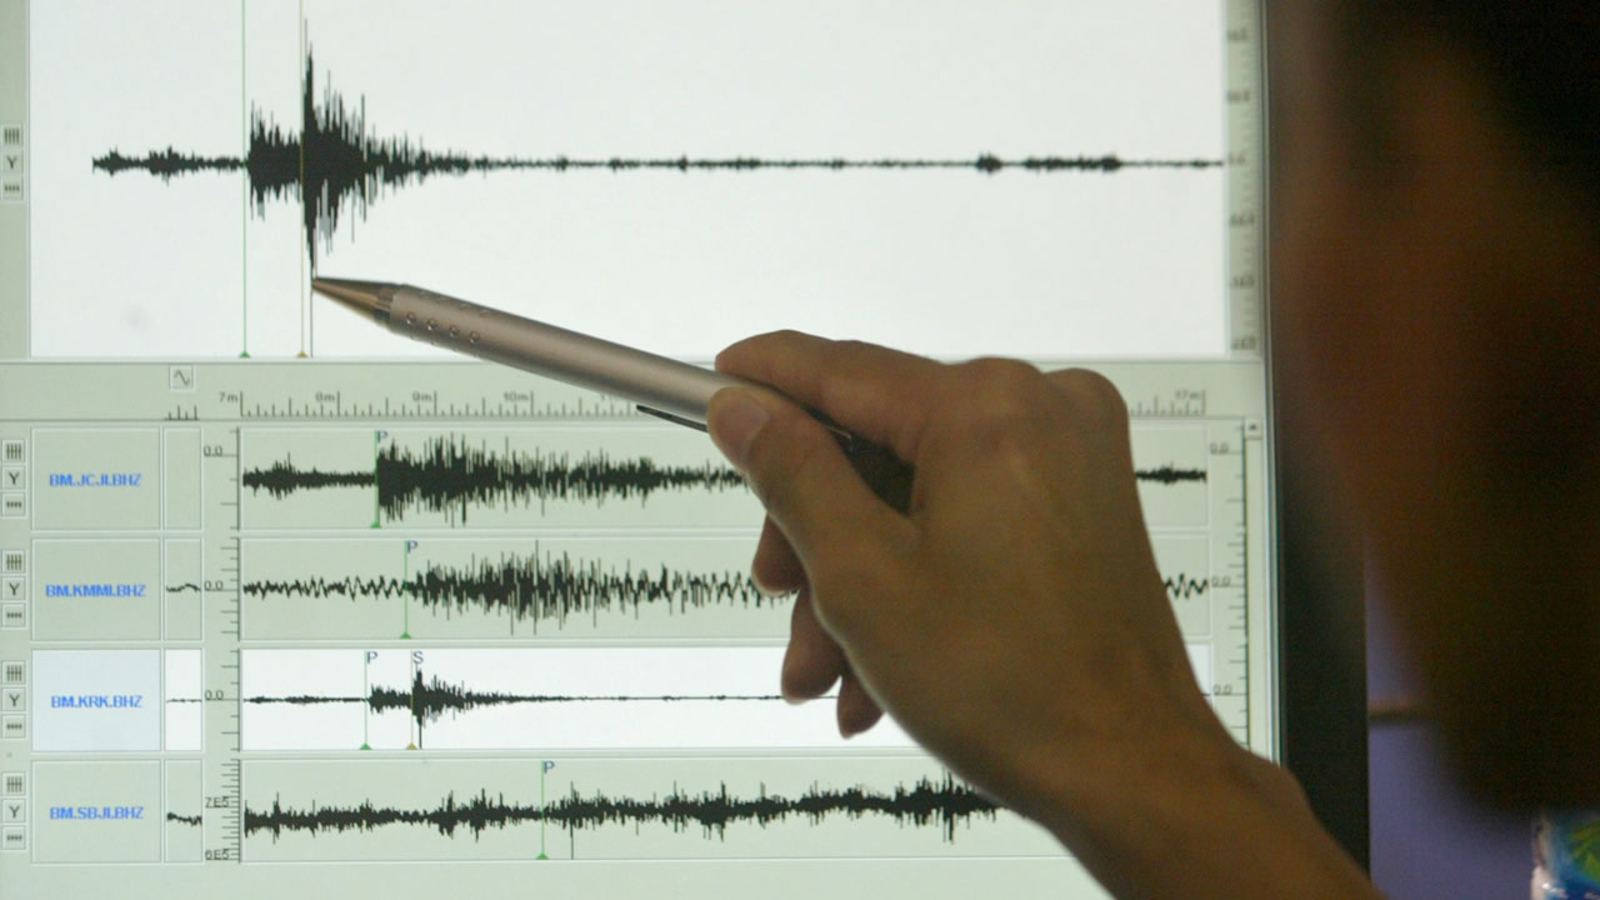 Small cluster of earthquakes may be warning sign of larger one to come, researcher says